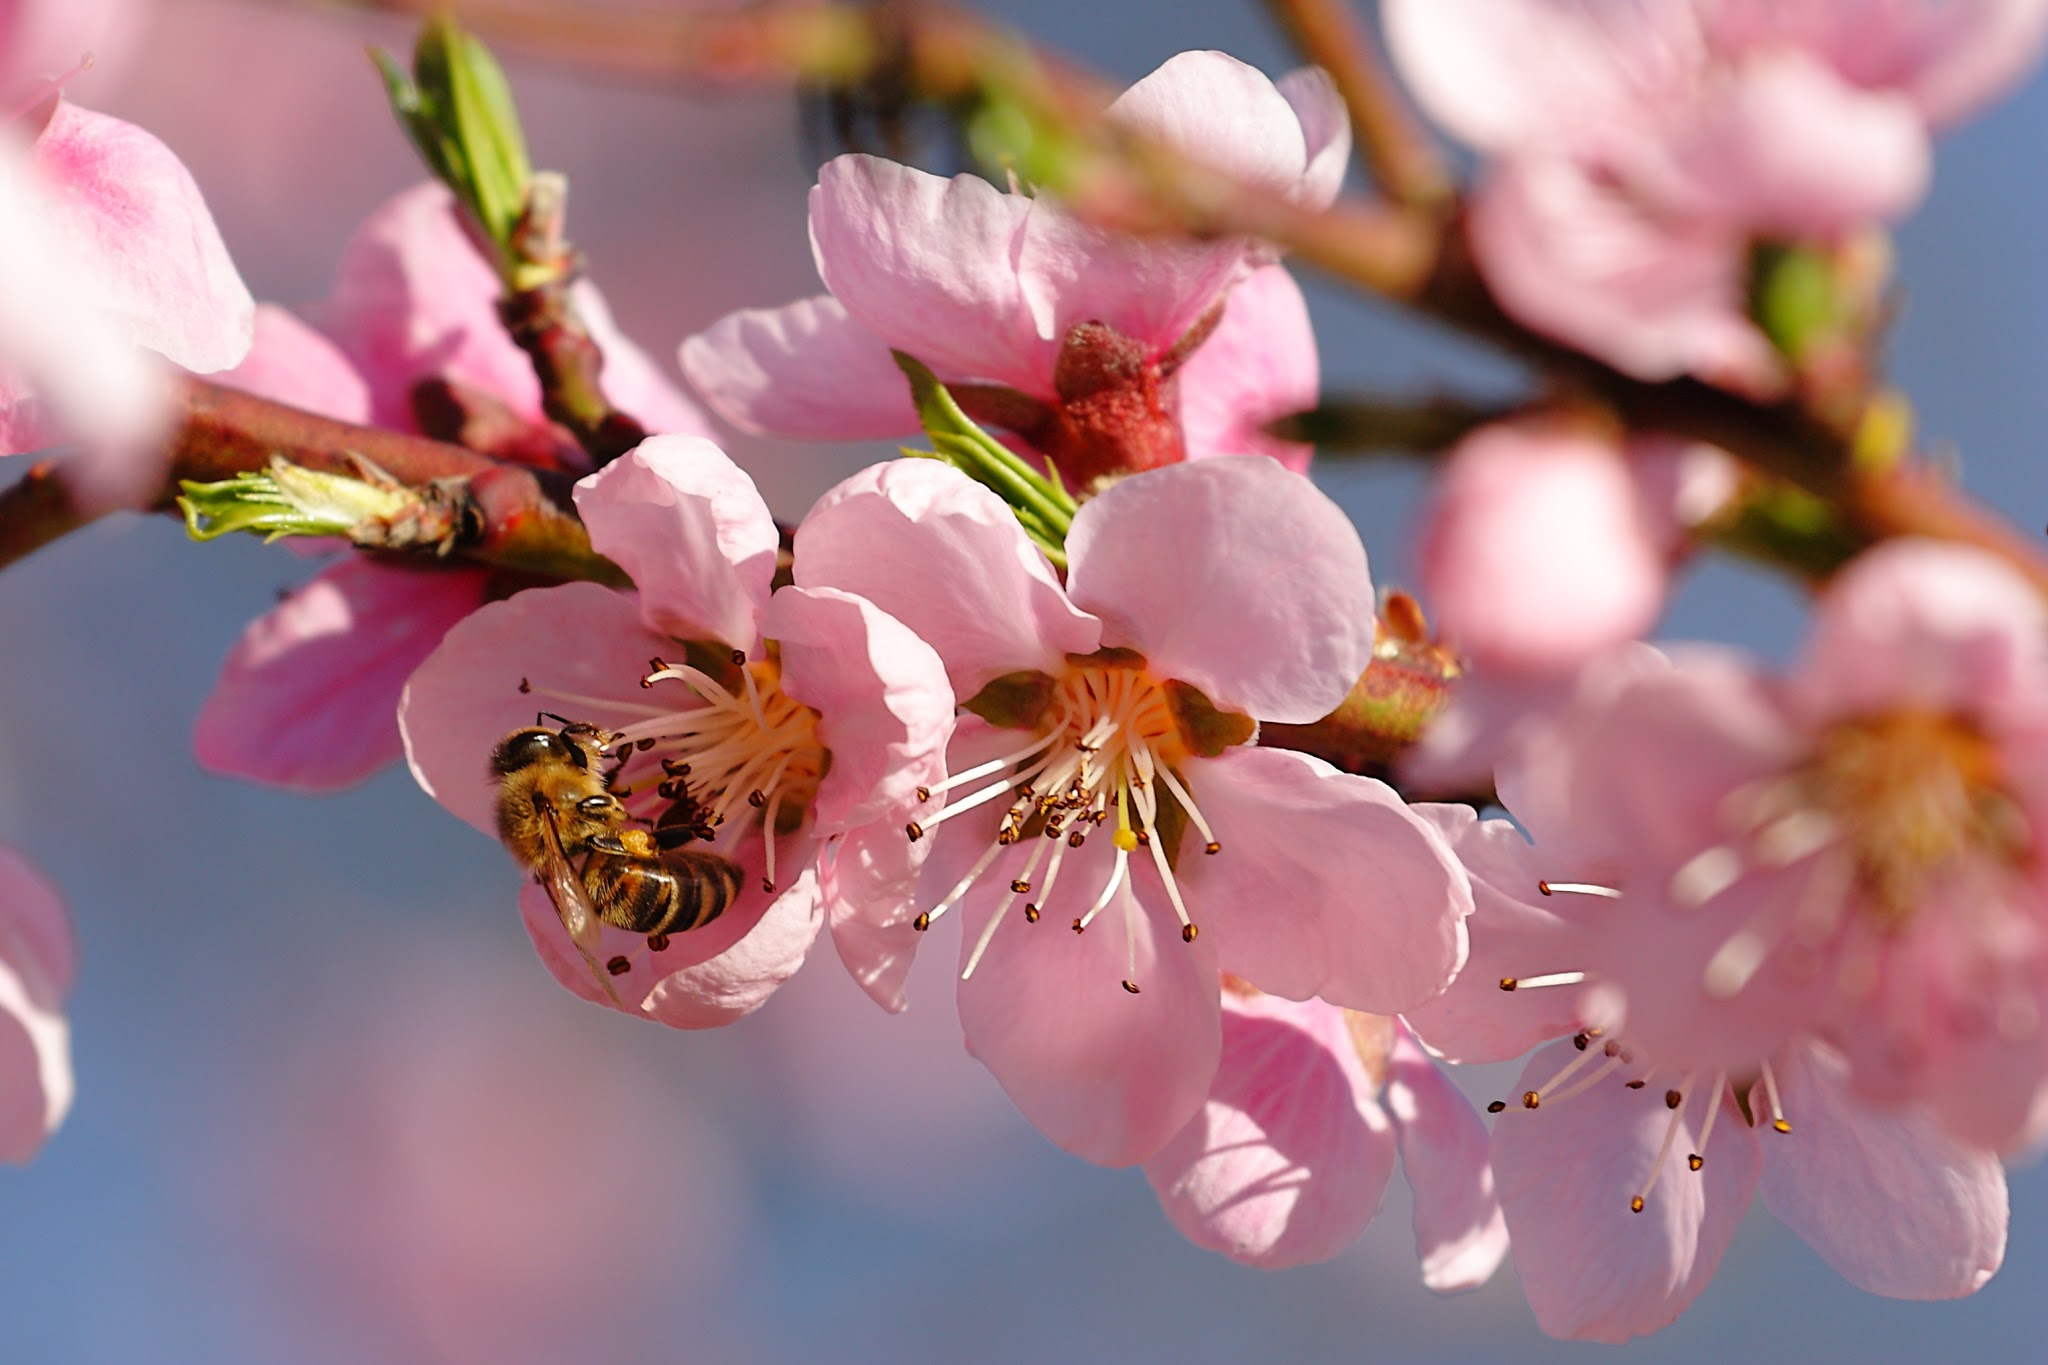 Beautiful Nature Wallpapers With Cherry Blossoms In Spring Season